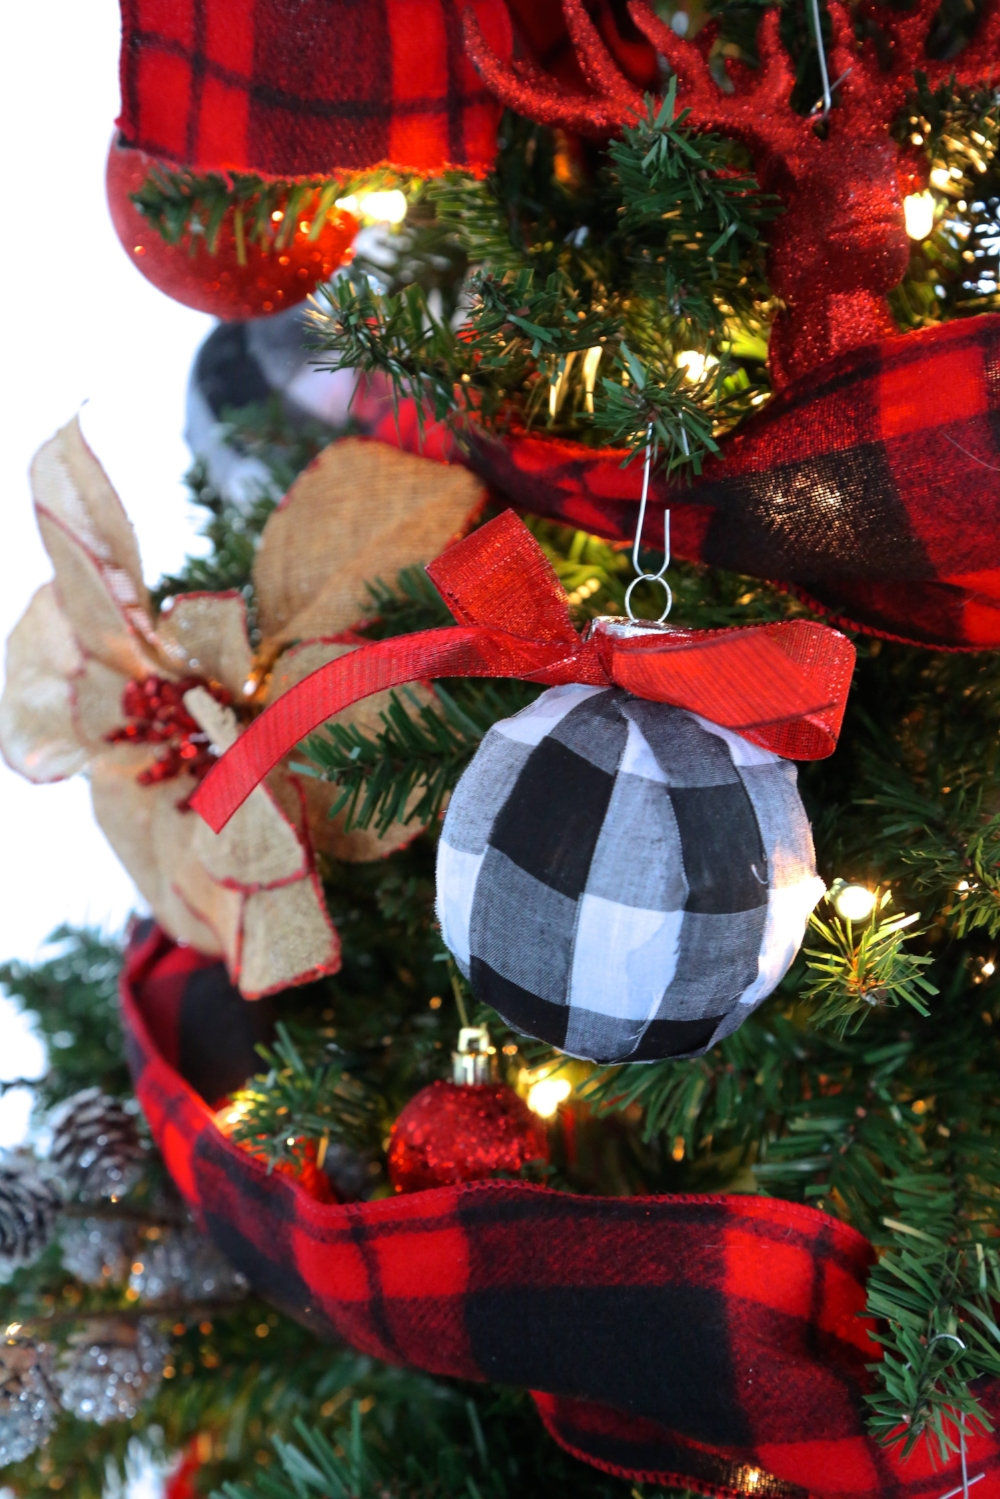 Checkered Christmas Ornaments Cheaper Than Retail Price Buy Clothing Accessories And Lifestyle Products For Women Men